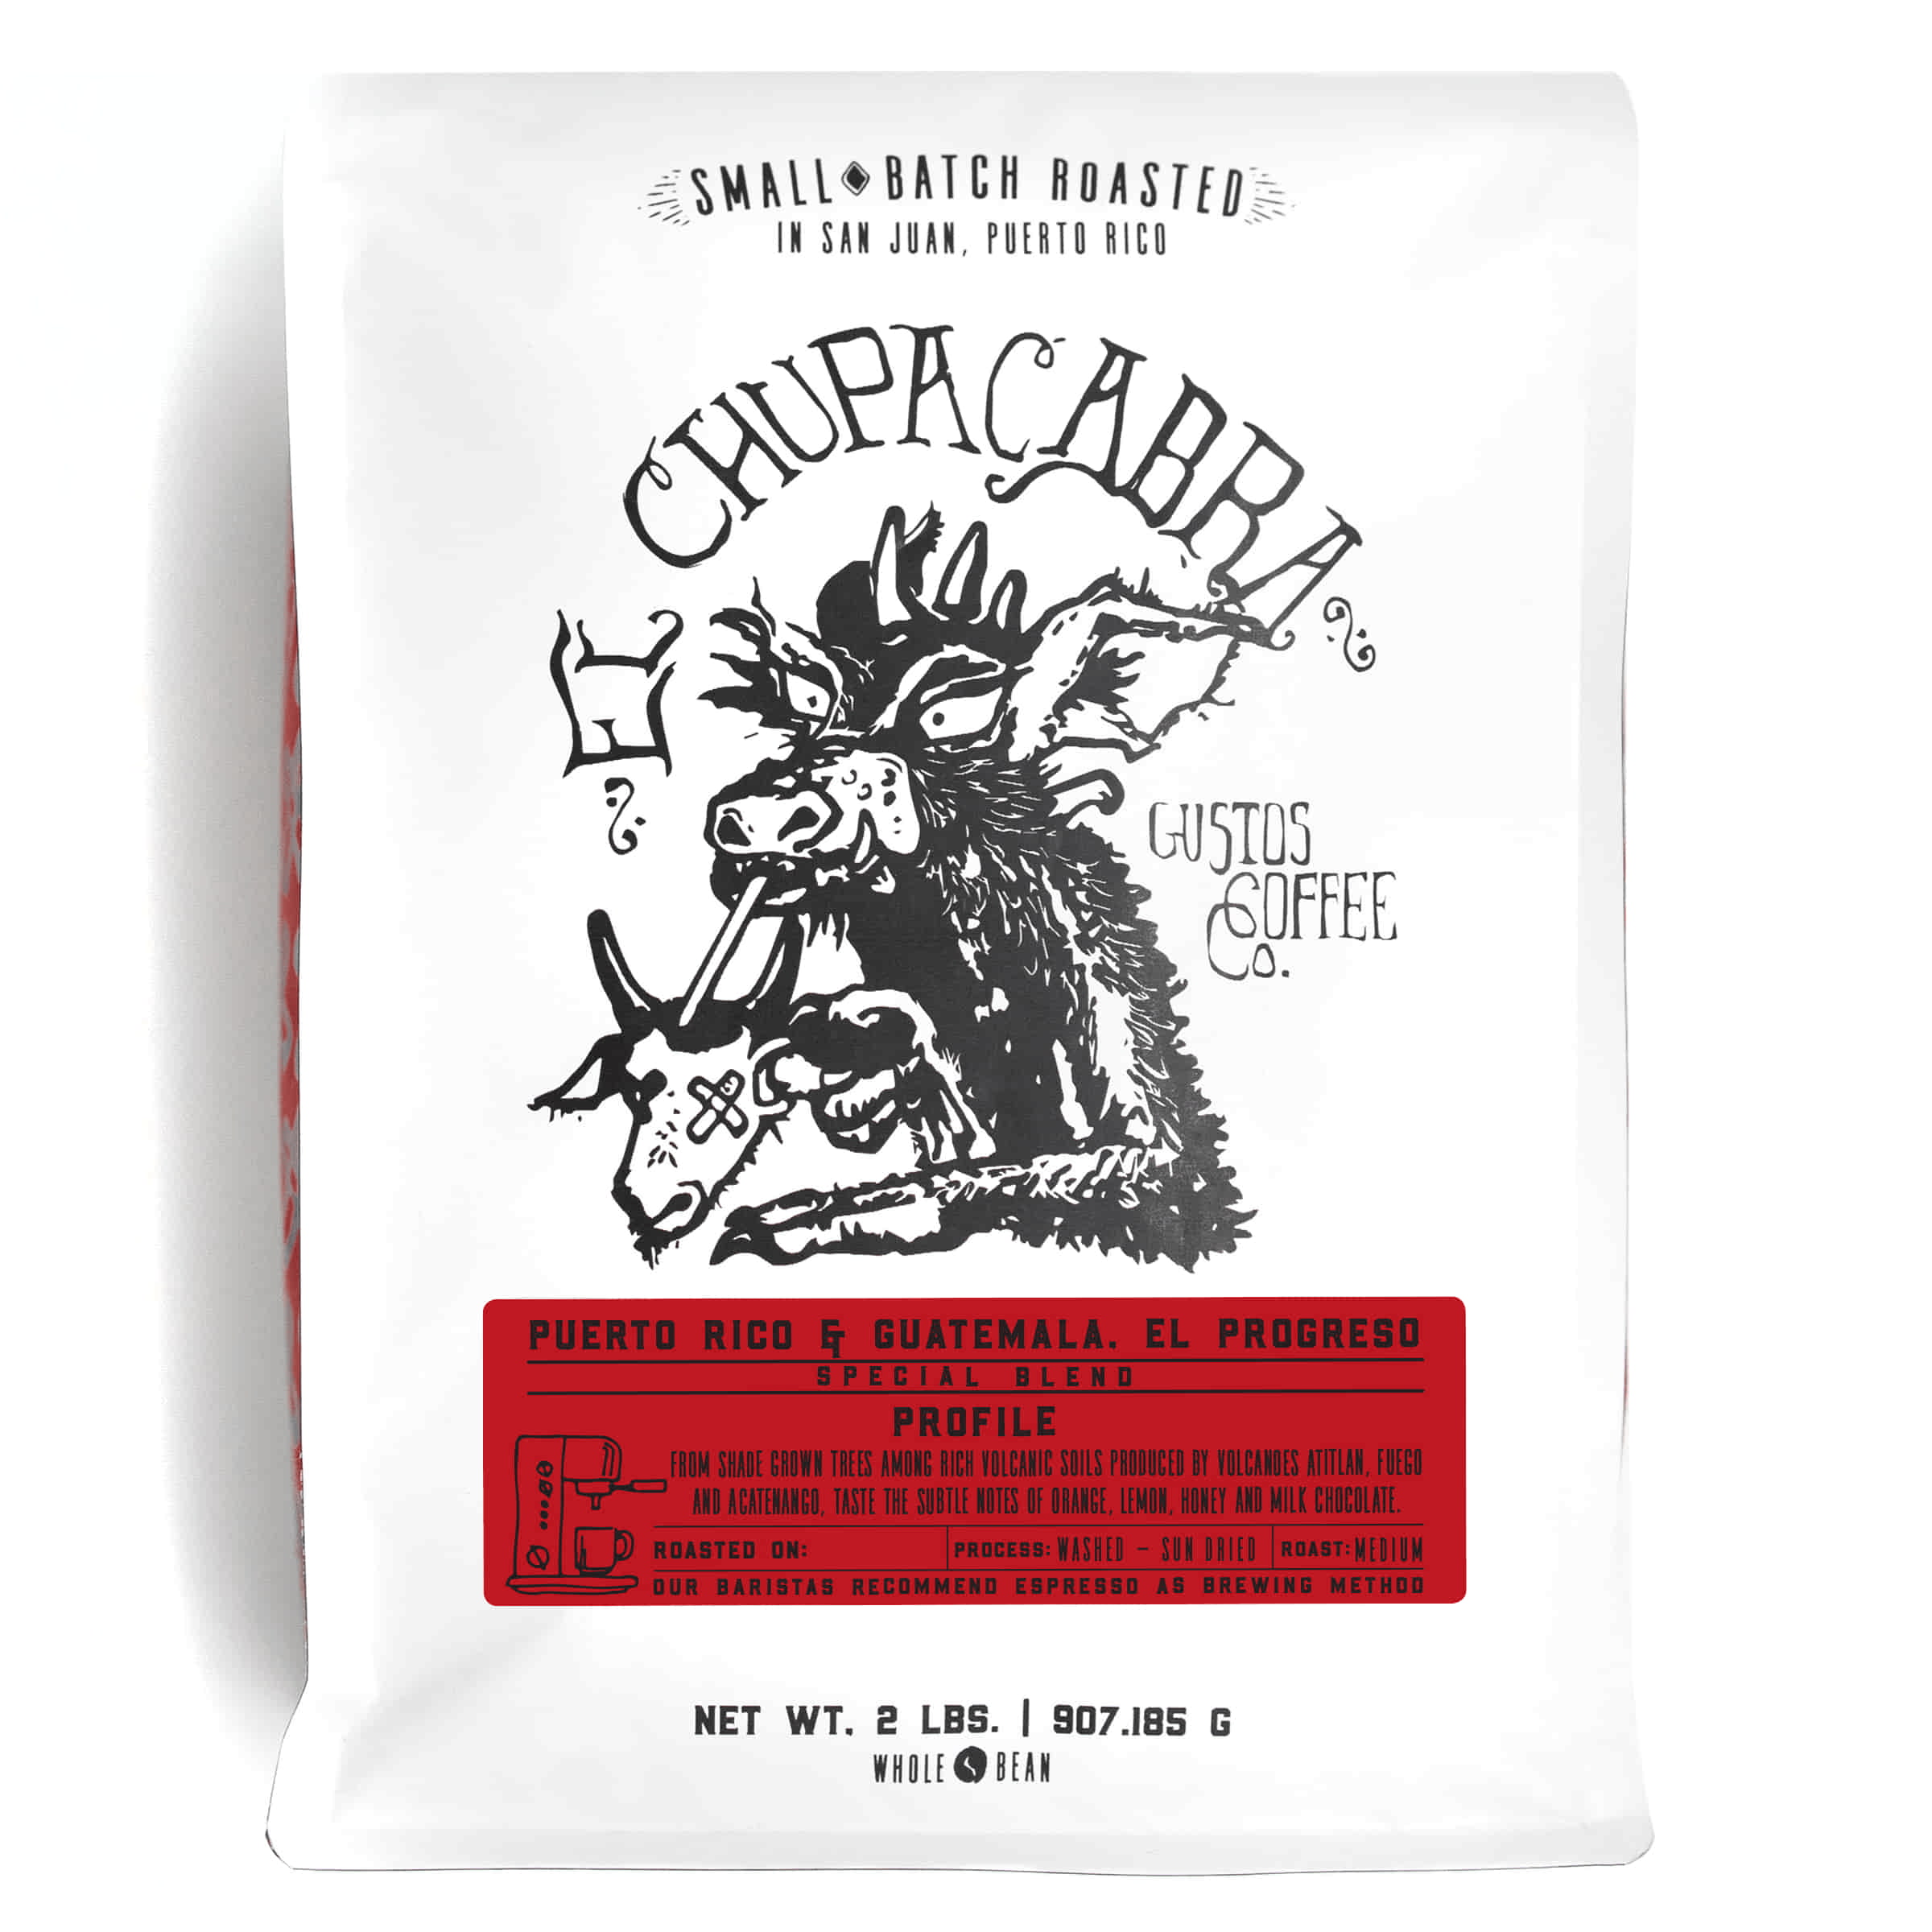 A 2lb bag of Specialty Coffee Blend Puerto Rico and Guatemala Finca El Progreso El Chupacabra by Gustos Coffee Co